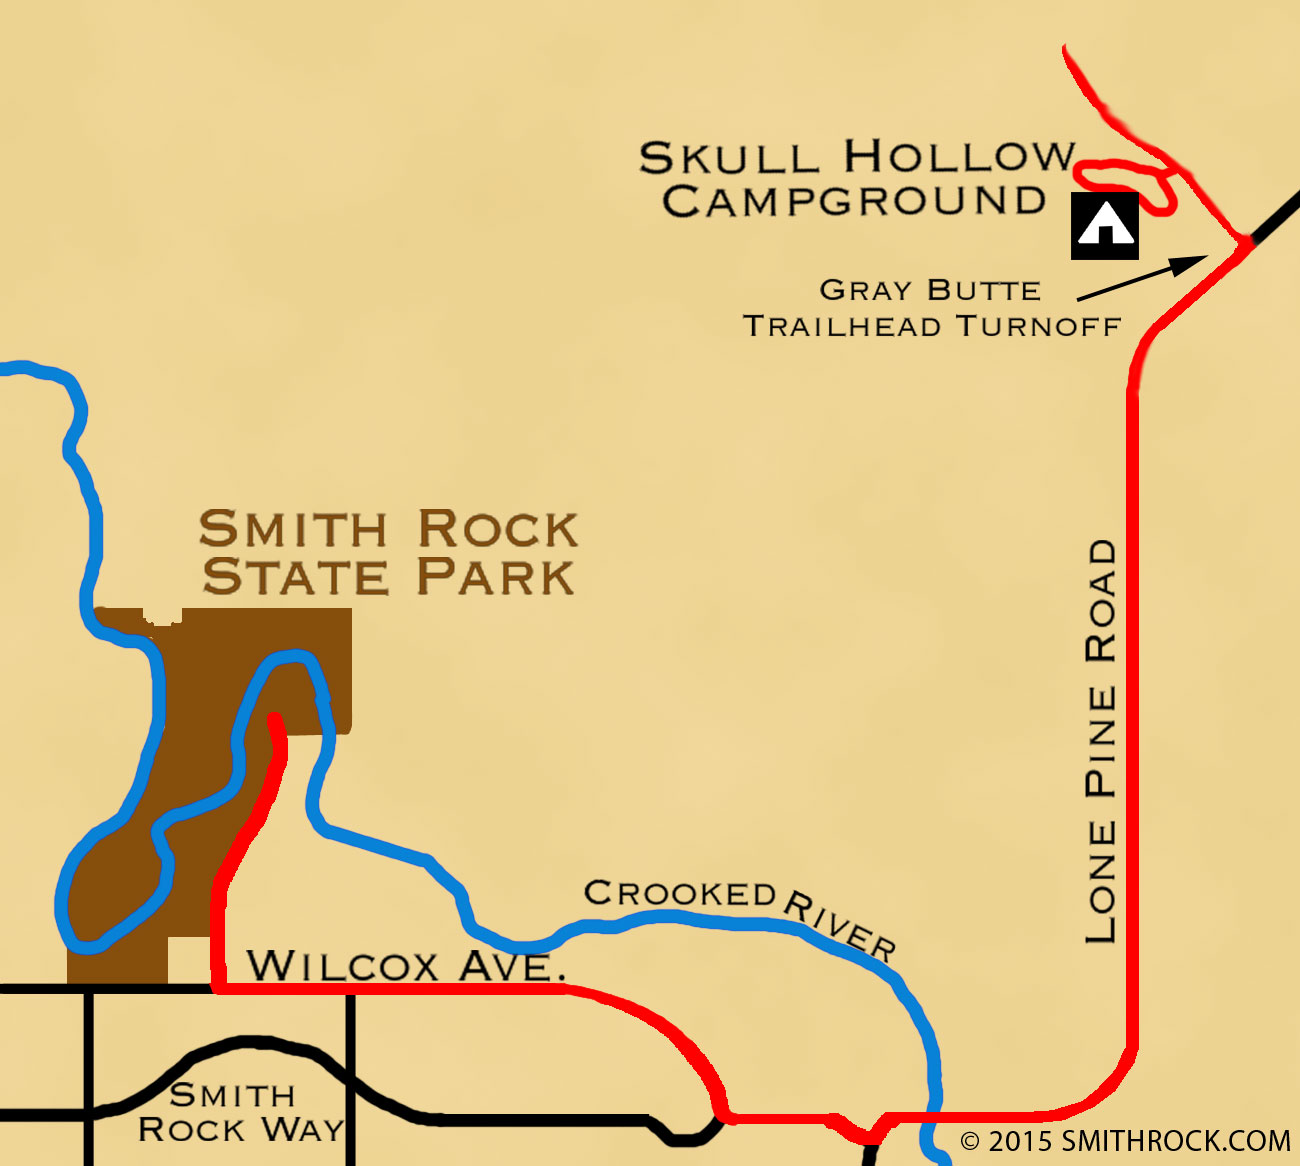 map from Smith Rock State Park to Skull Hollow Campground—click to enlarge